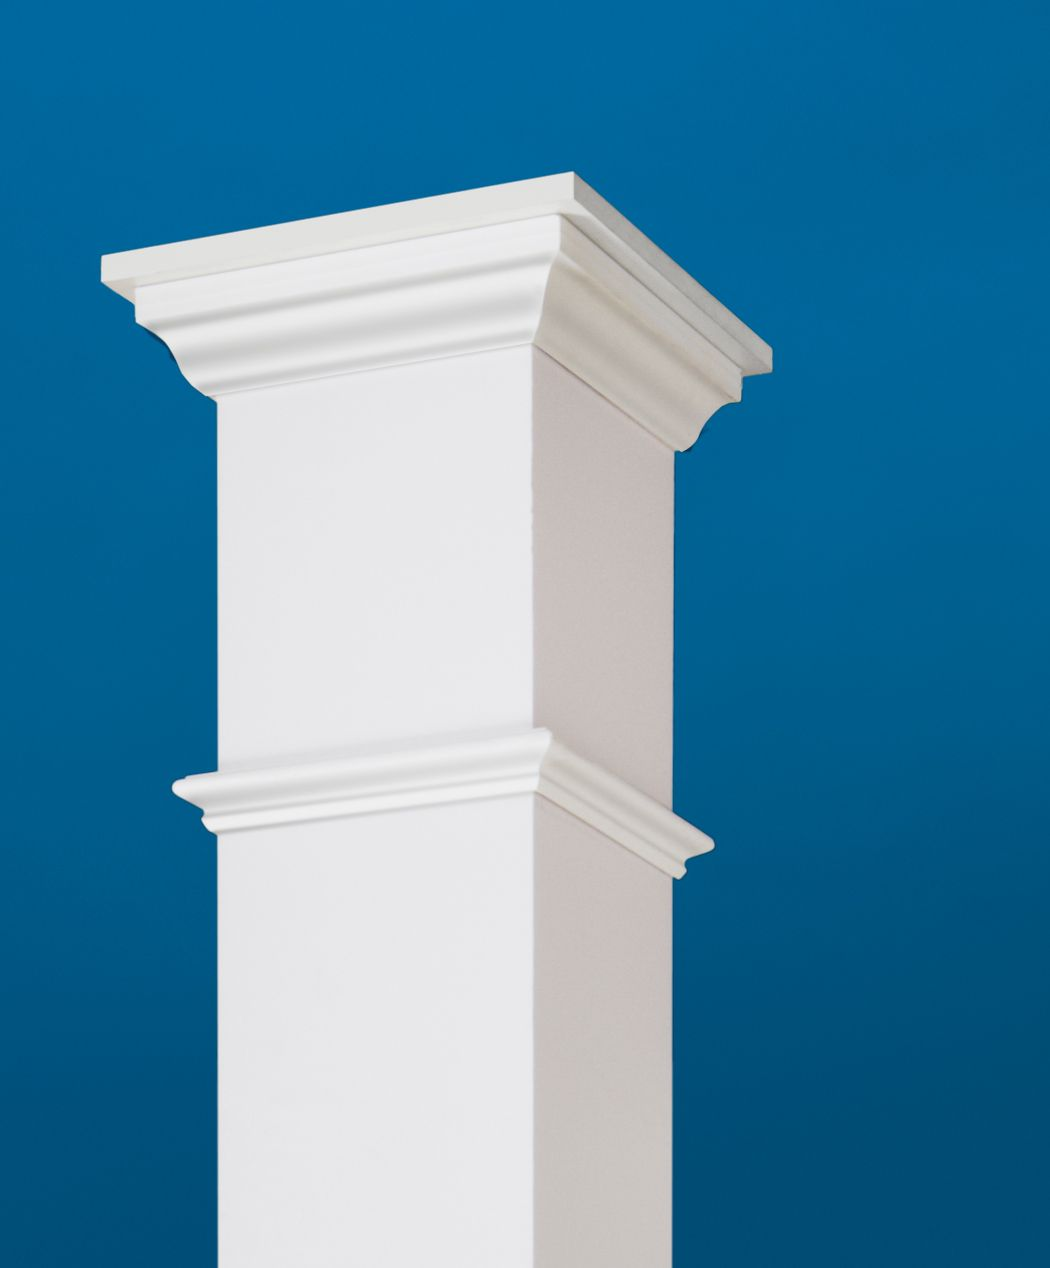 accessories vinyl railing sleeve p post colonial in rdi veranda porch x white columns